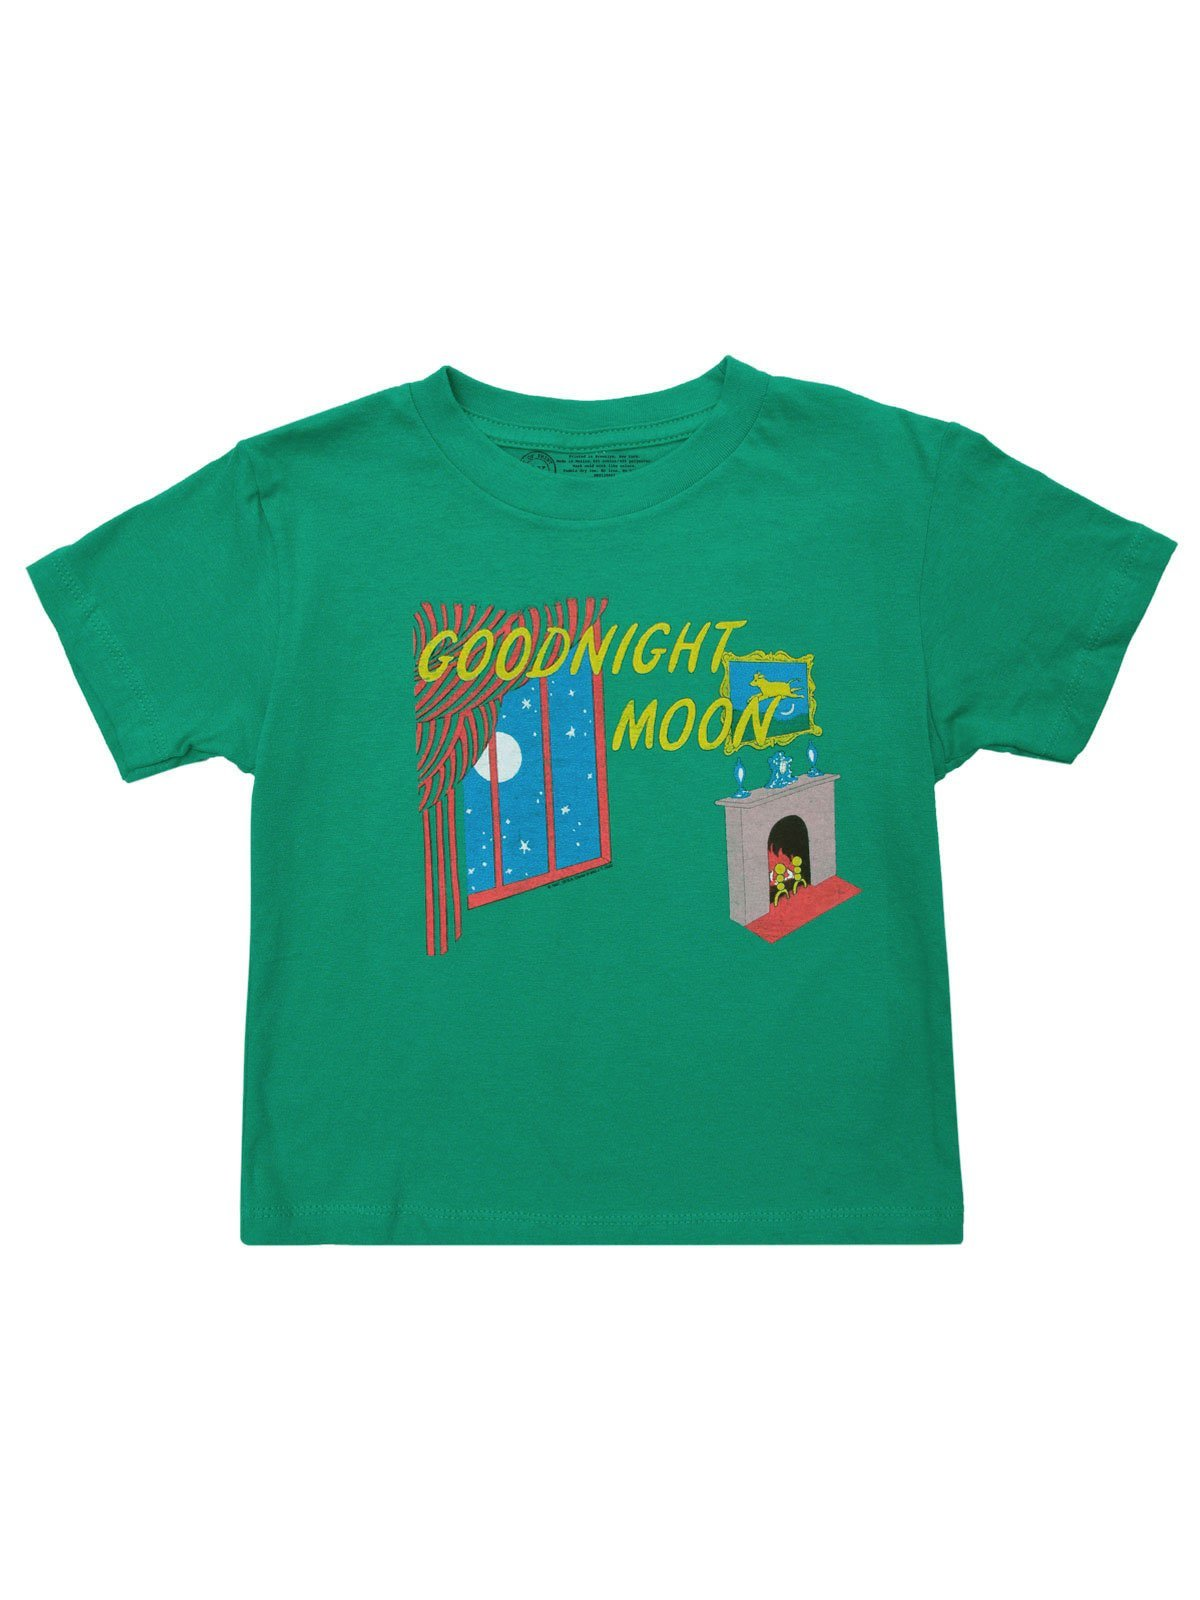 Out of Print: Goodnight Moon Childrens Tee - 4/5 yrs image